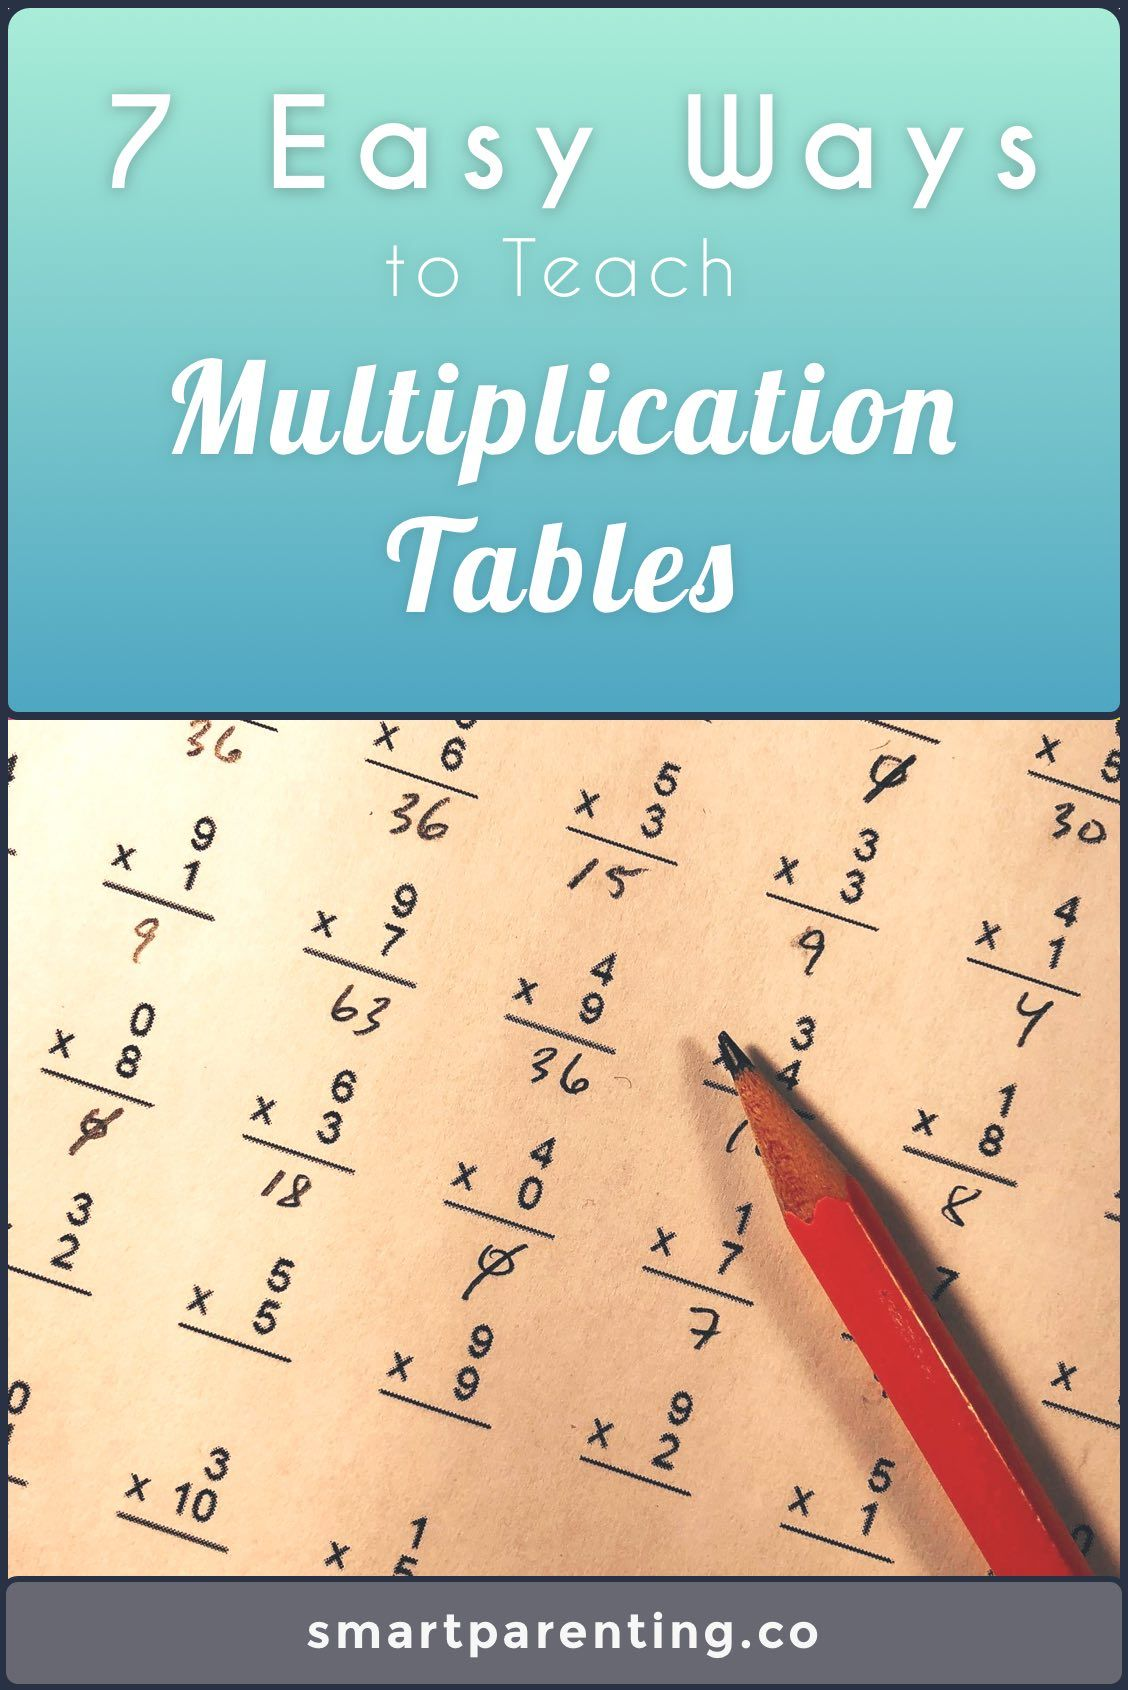 Learning Multiplication Is A Critical Milestone For Every Child